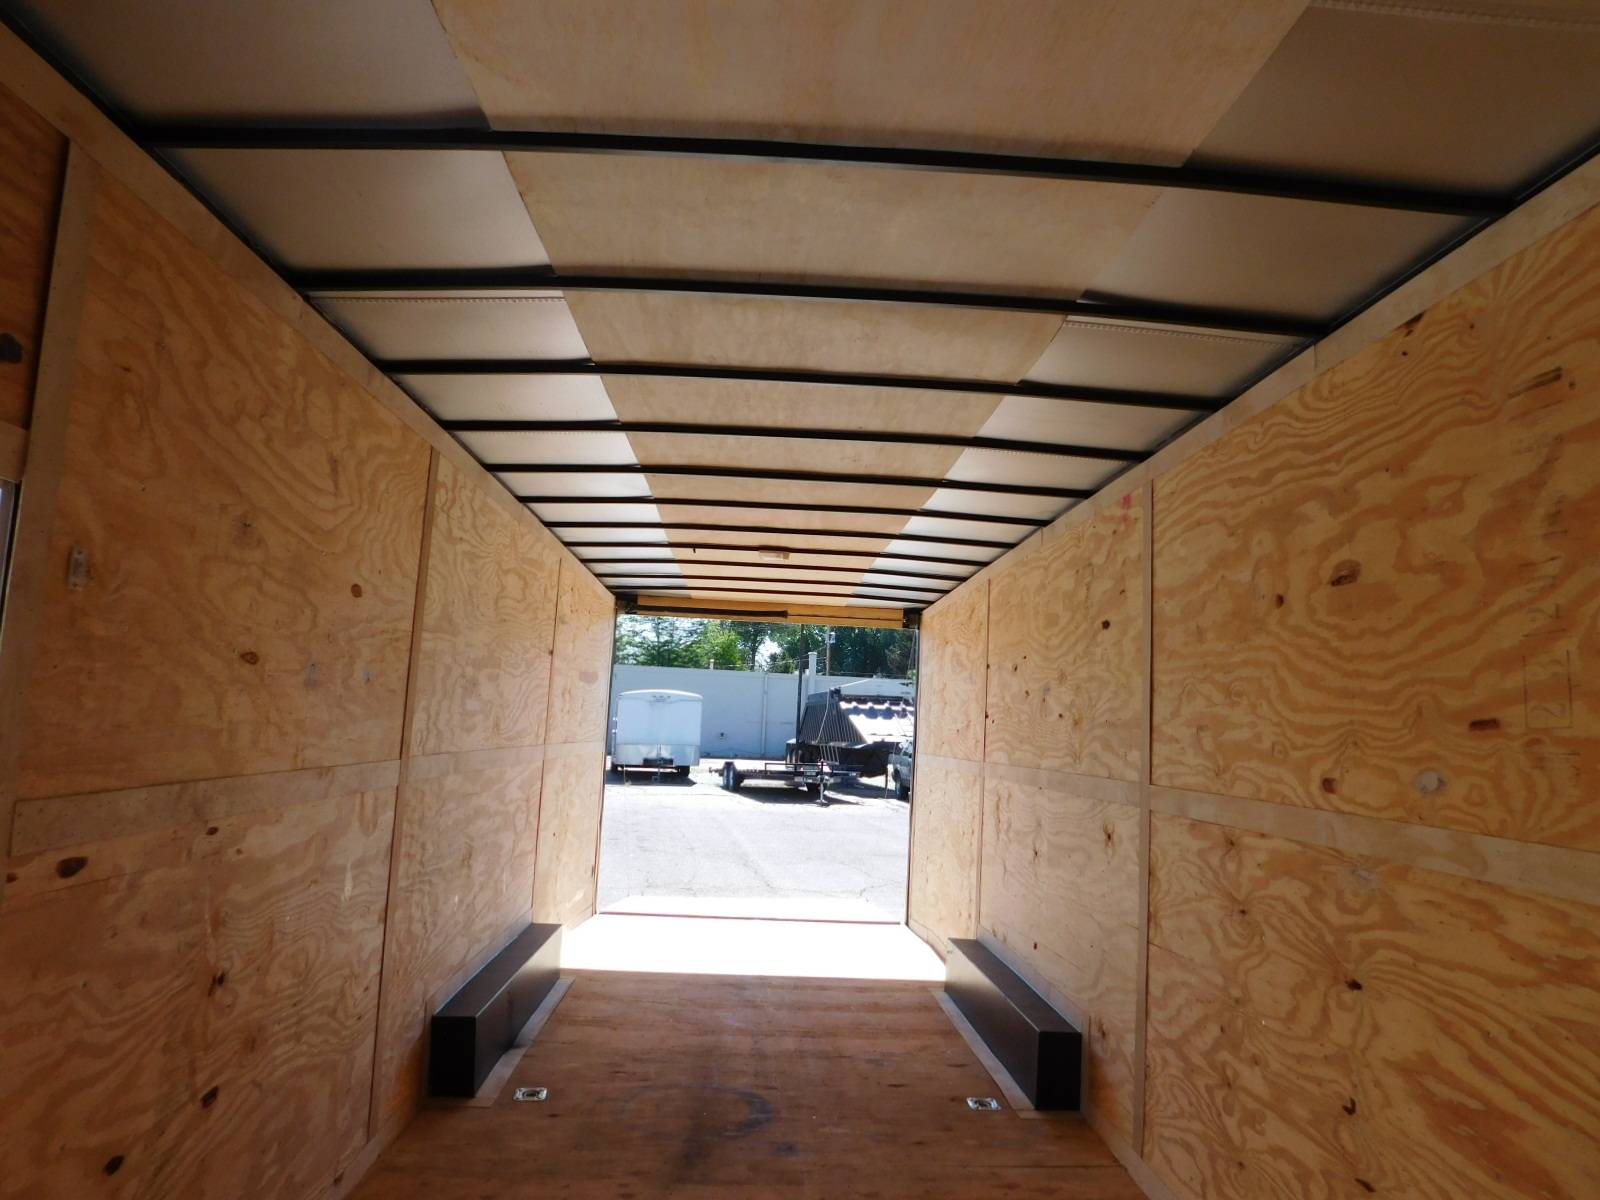 2019 Other 8X8X28 Enclosed Trailer in Loveland, Colorado - Photo 11